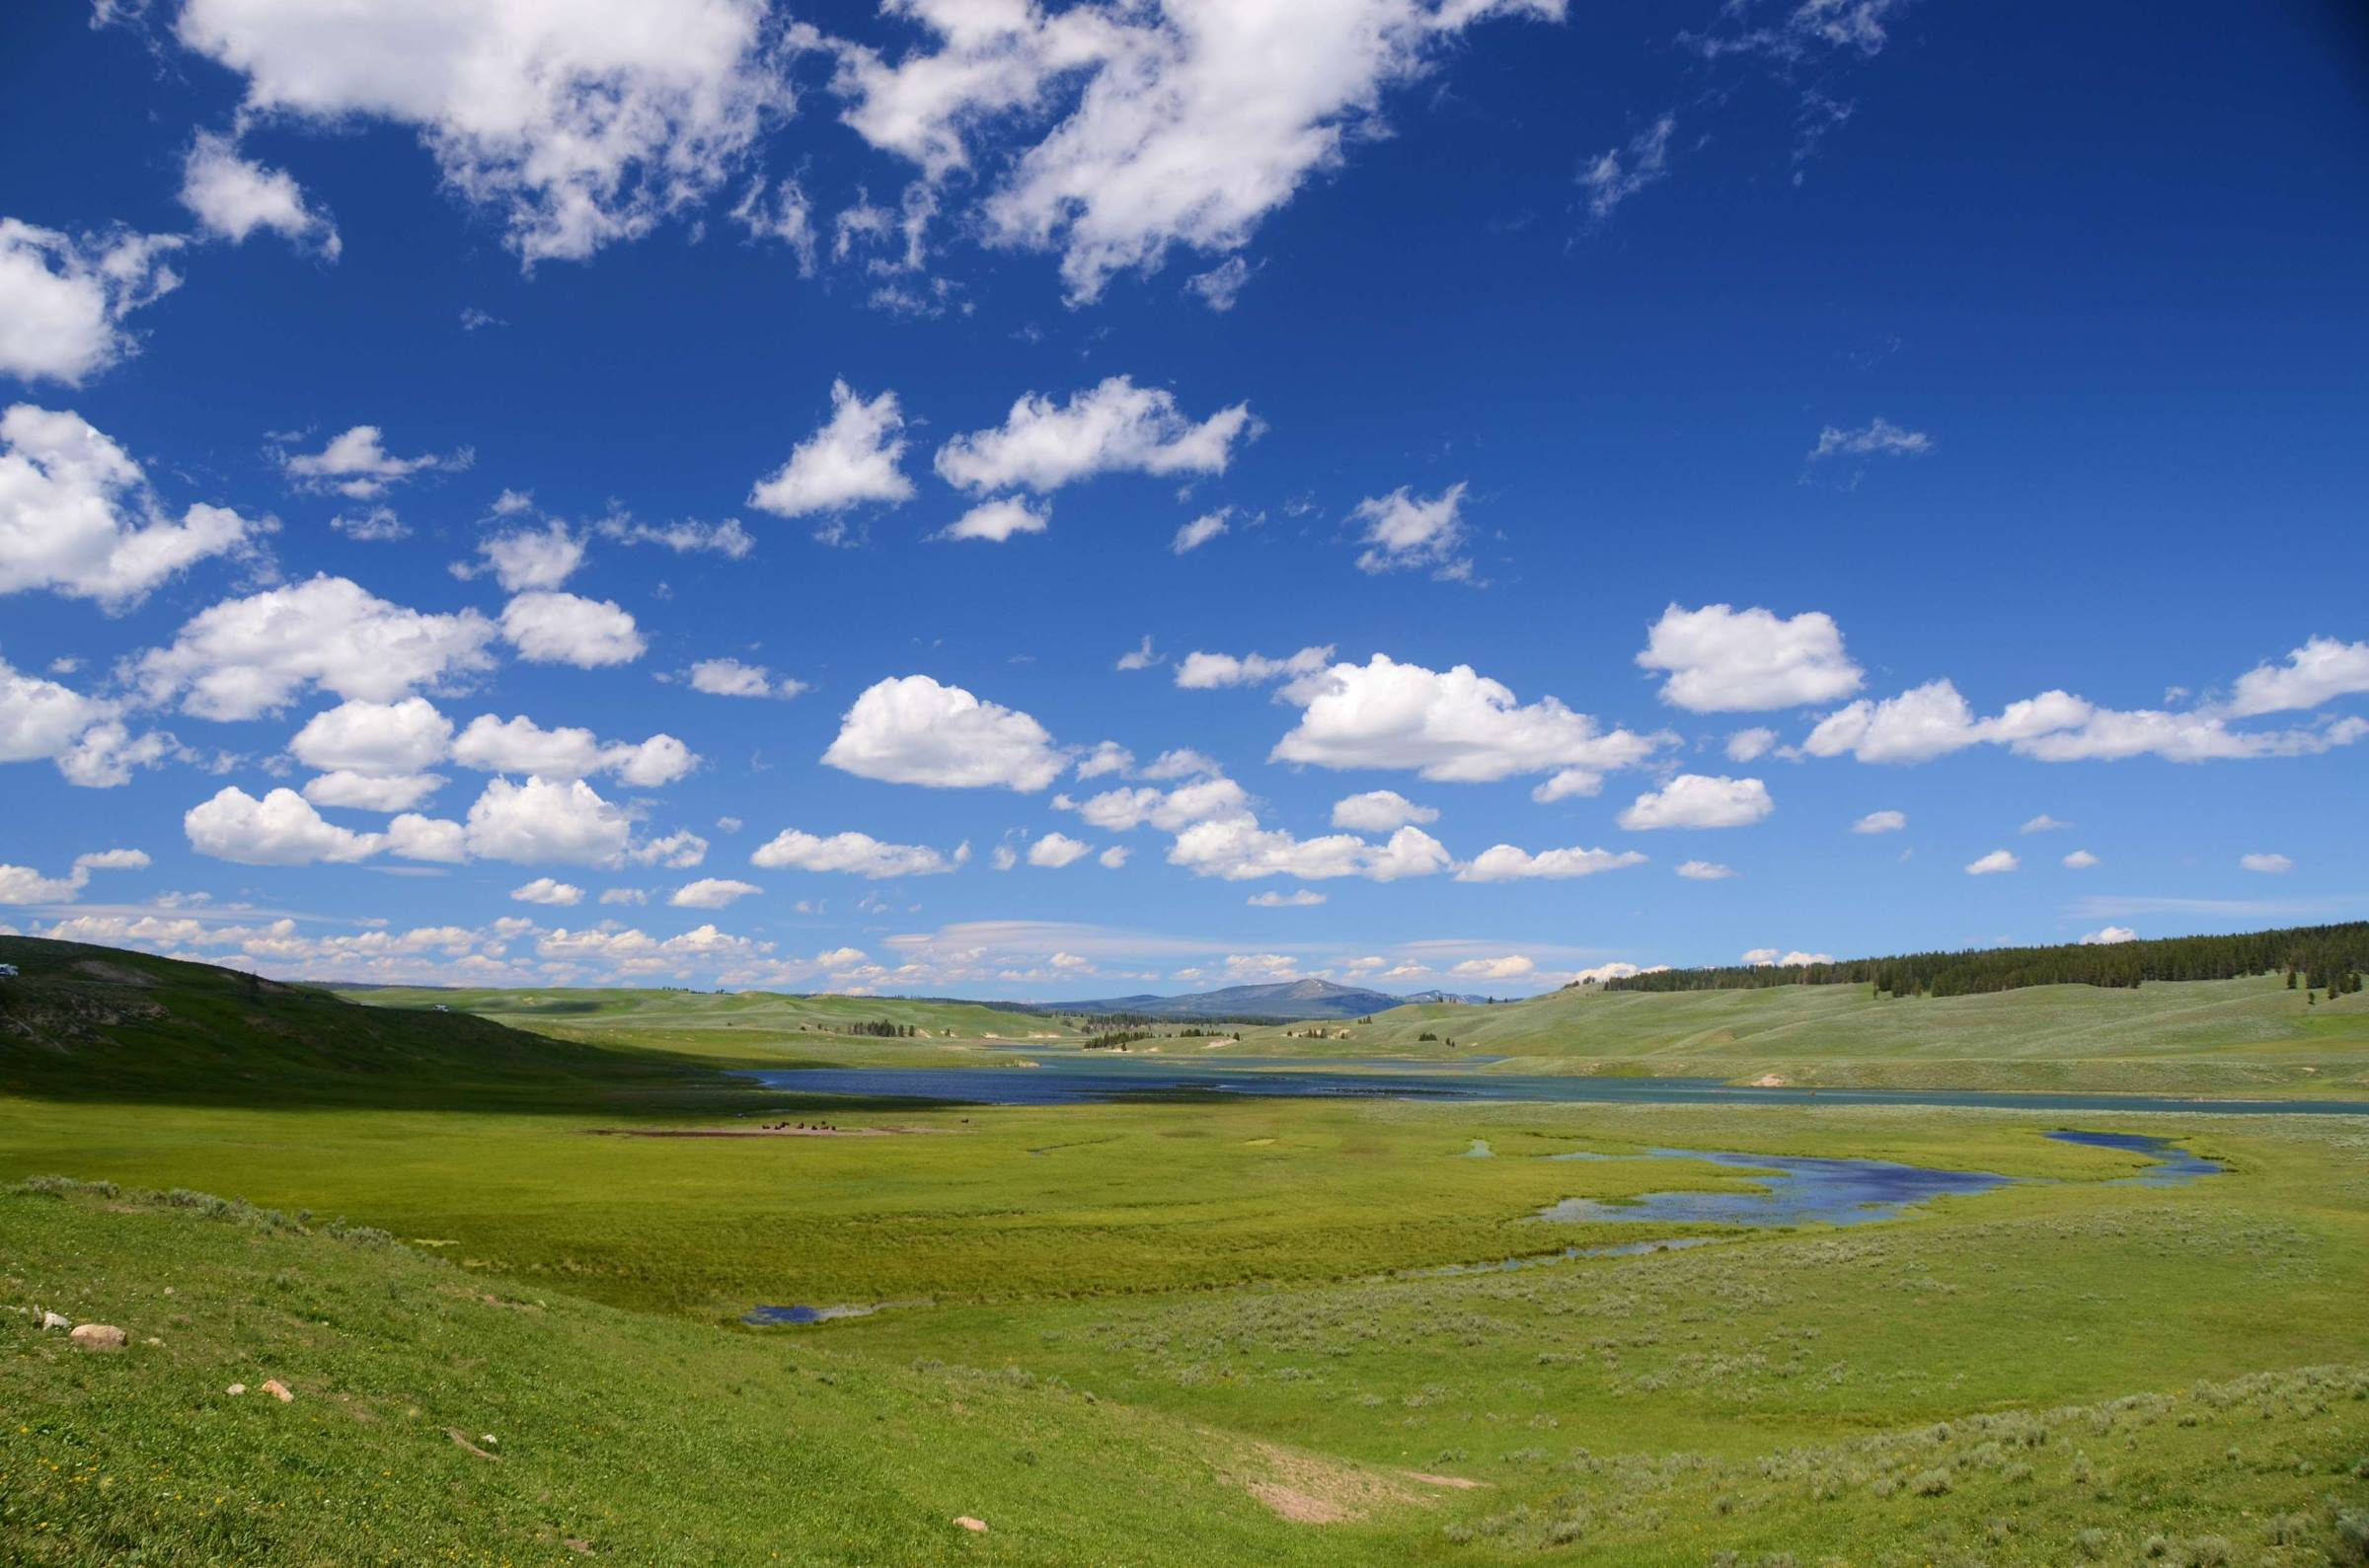 yellowstone national park water meadow landscape clouds